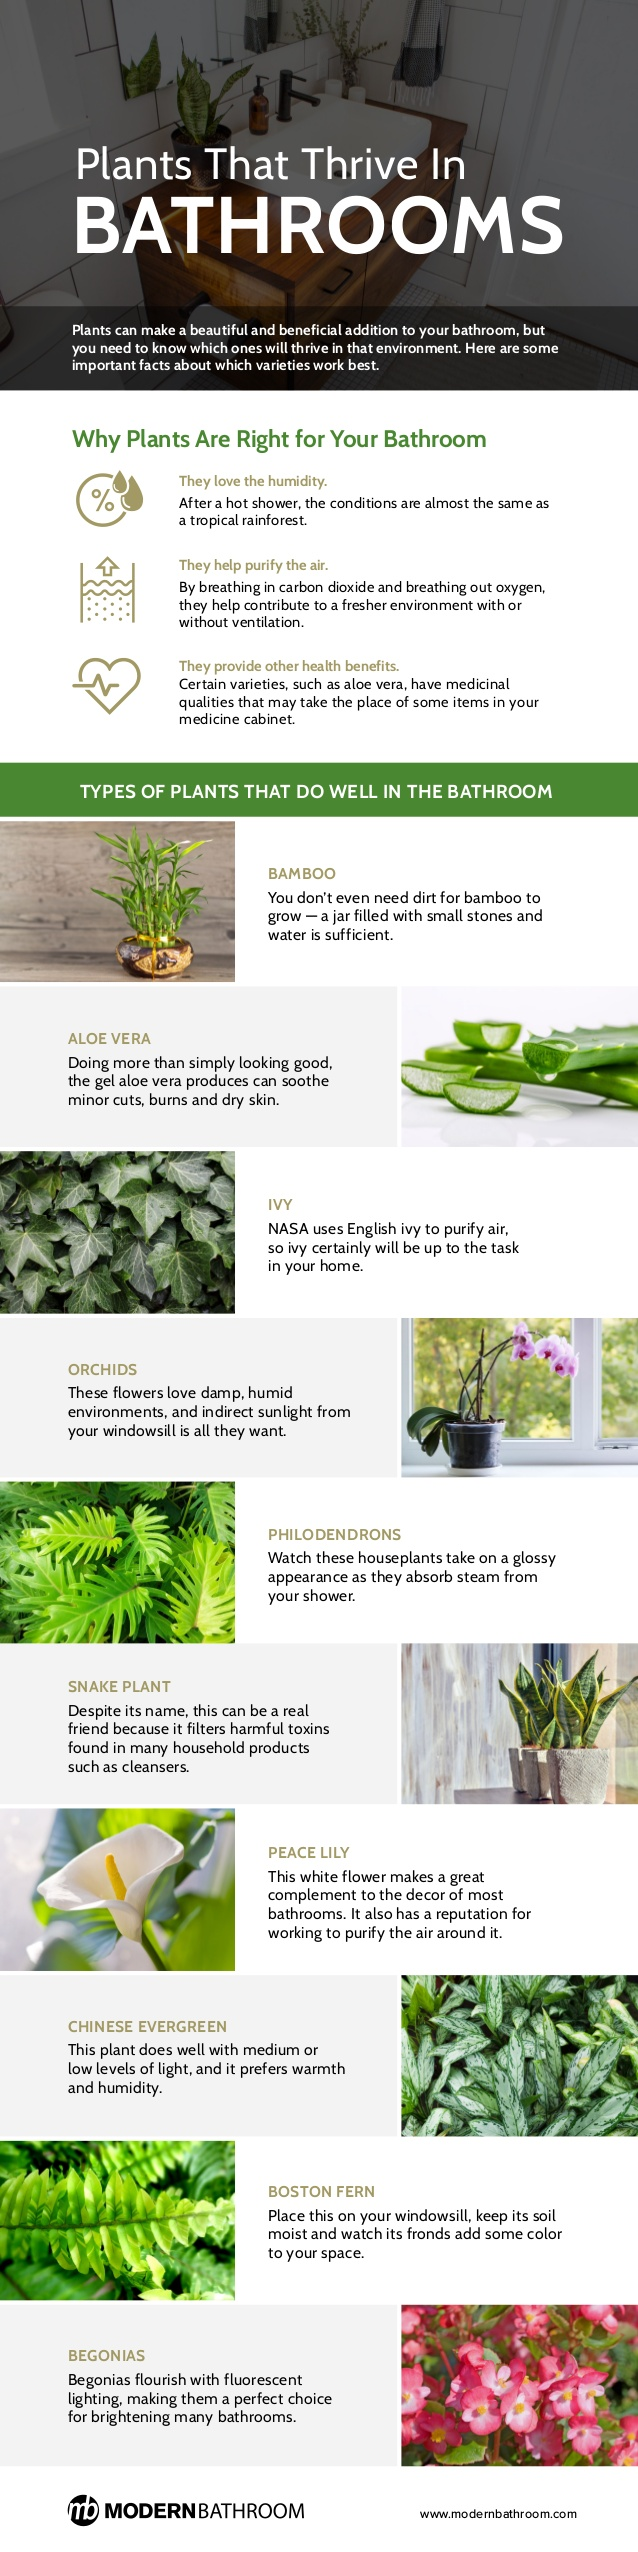 Plants That Trive In Bathrooms Infographic - RUNA on tropical garden bathroom, bamboo plant bathroom, tropical fish bathroom, tropical stone bathroom, tropical design bathroom,